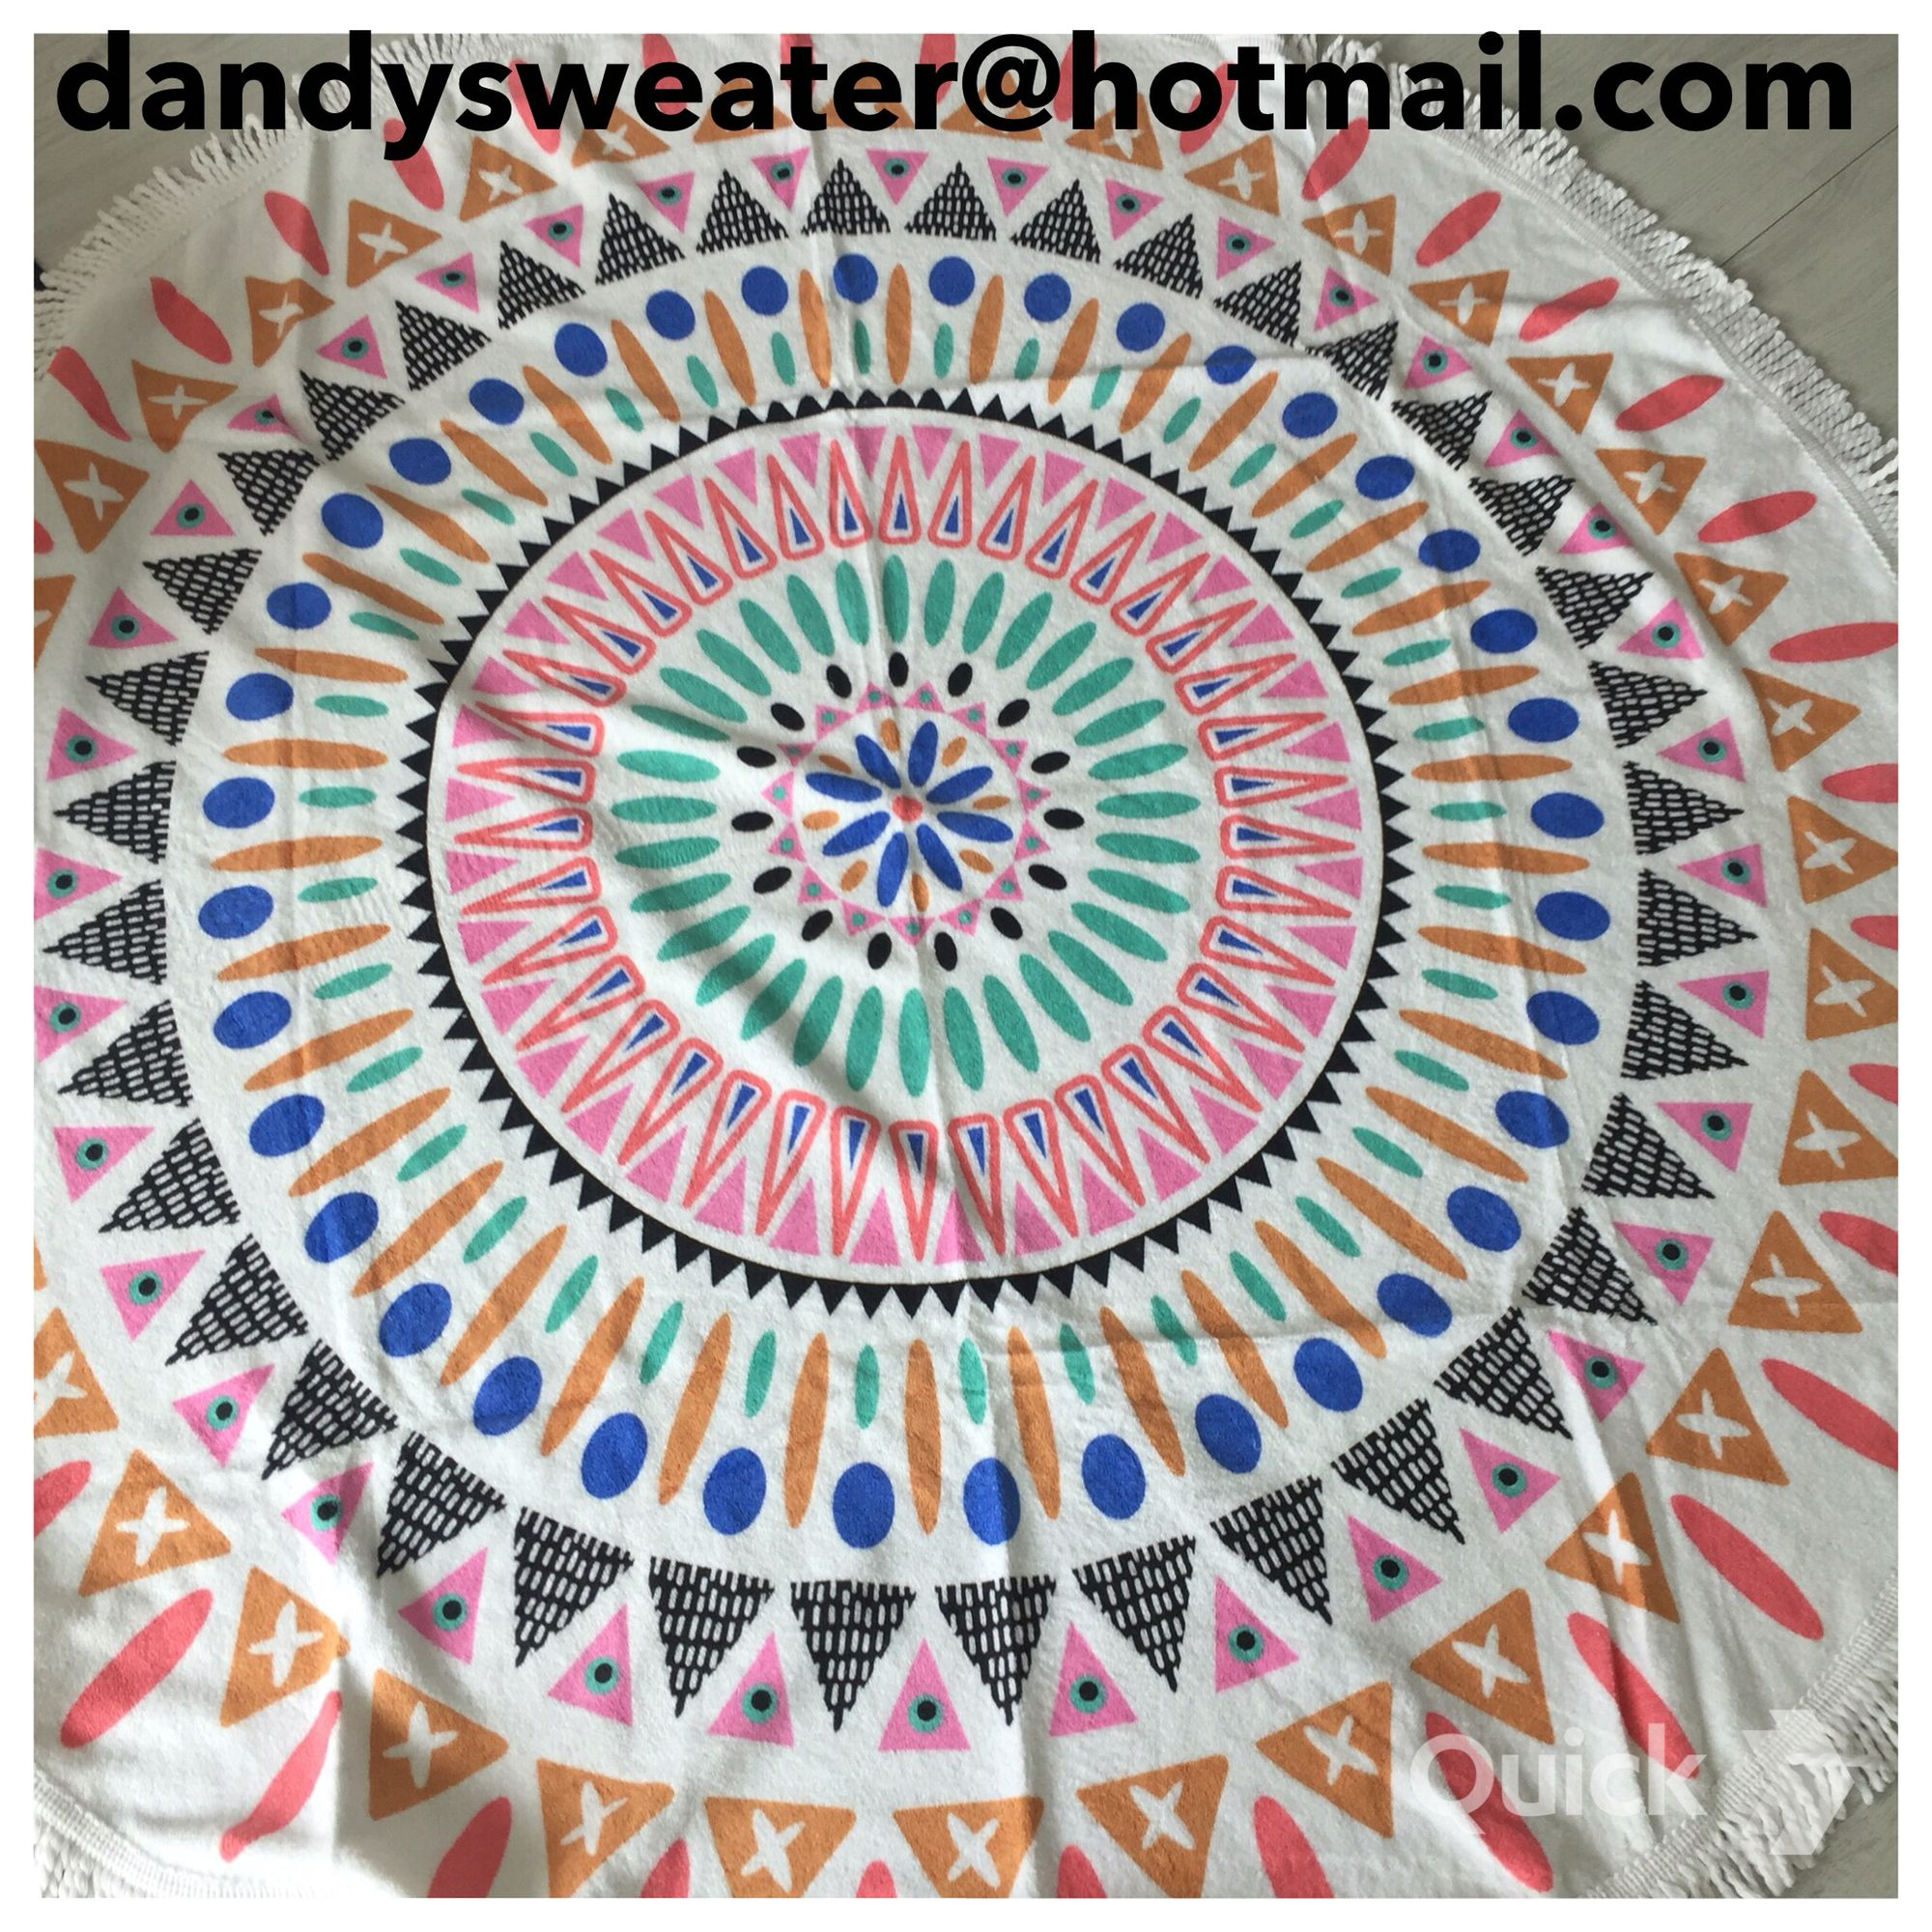 We love round beach towels info dandysweater@hotmail.com